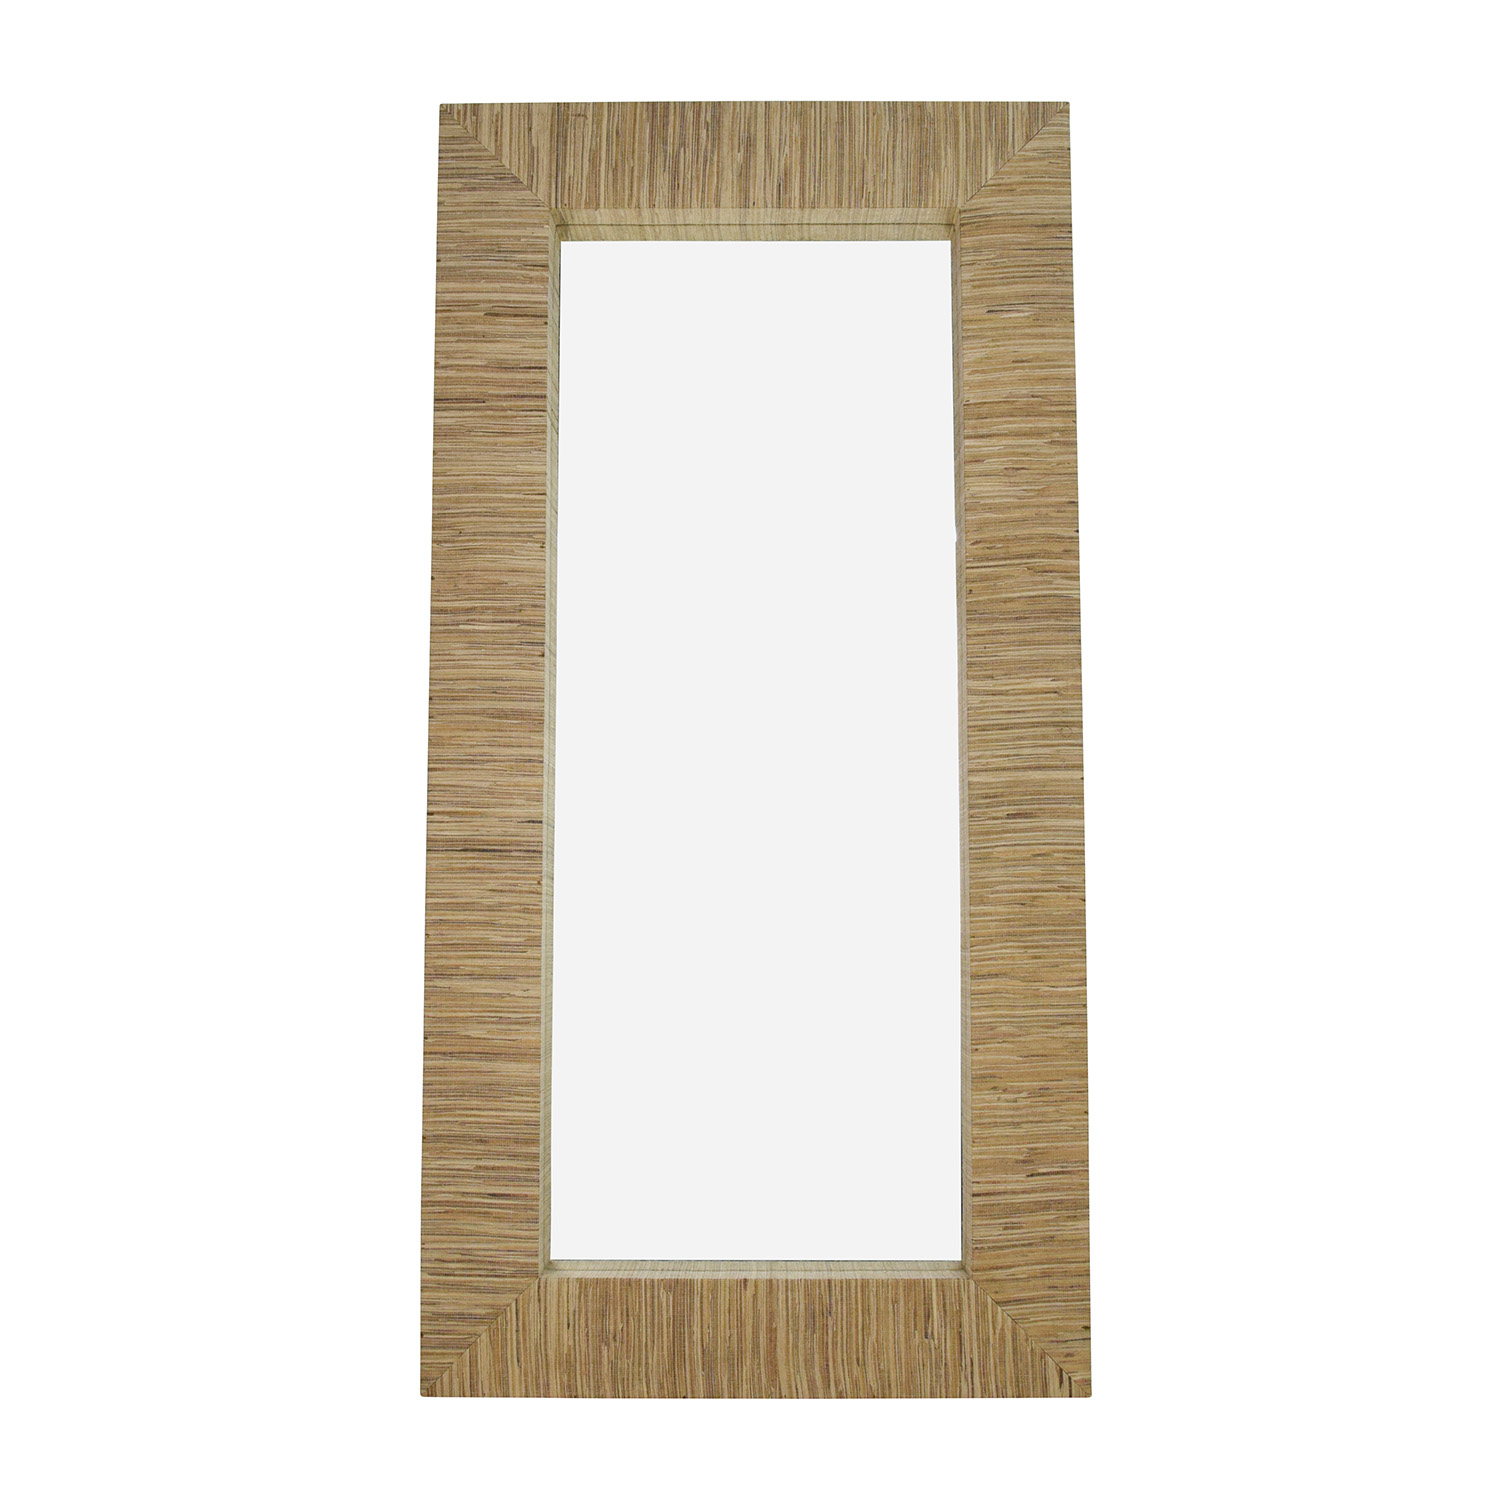 buy Wall Mirror with Beige Toned Fabric Frame Decor